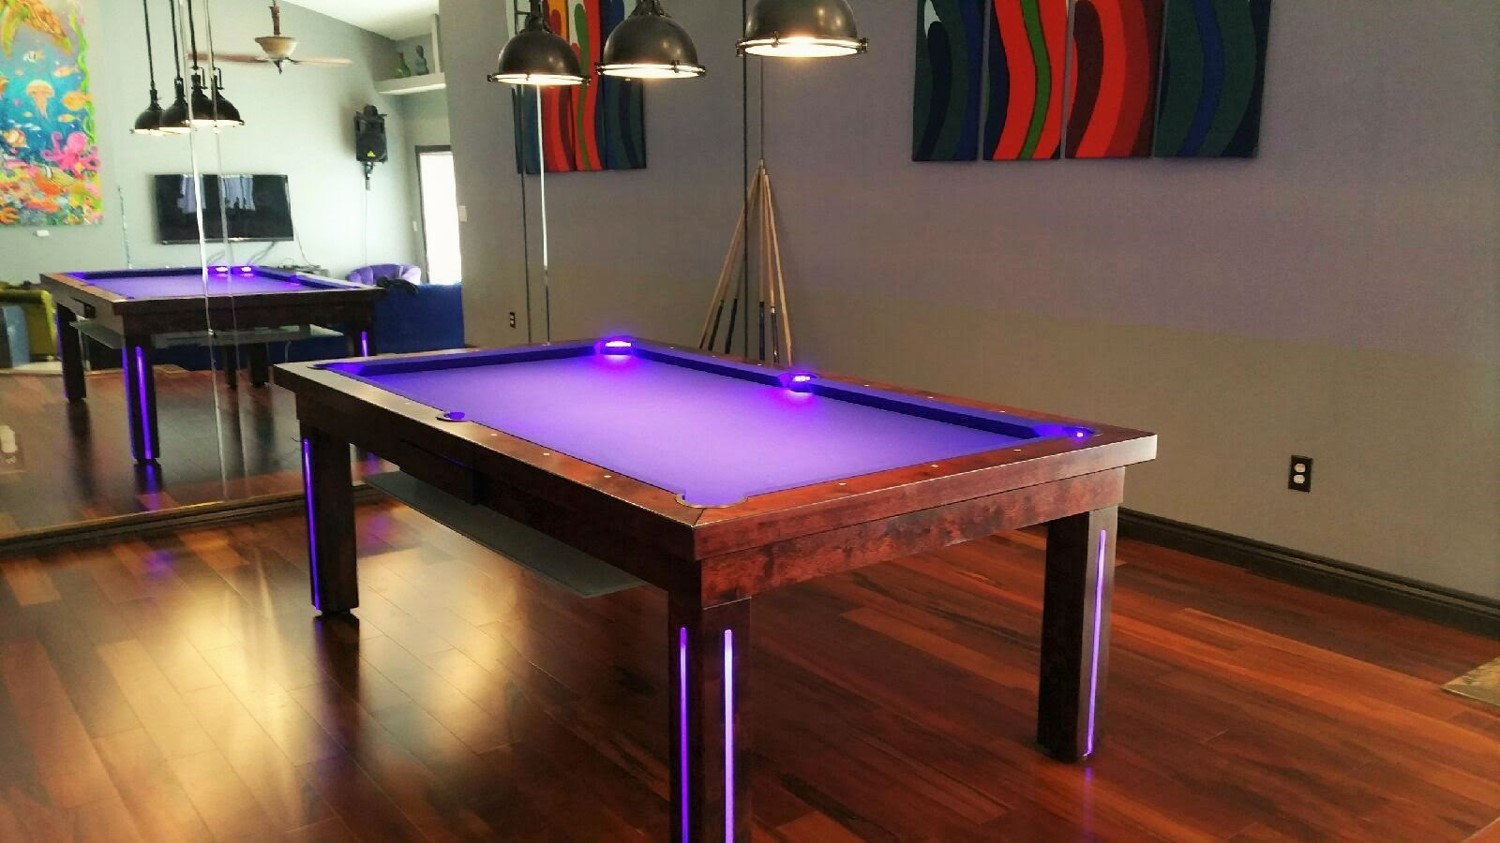 Dining Table Pool Tables Convertible Convertible Pool Tables Dining Room Pool Tables By Generation